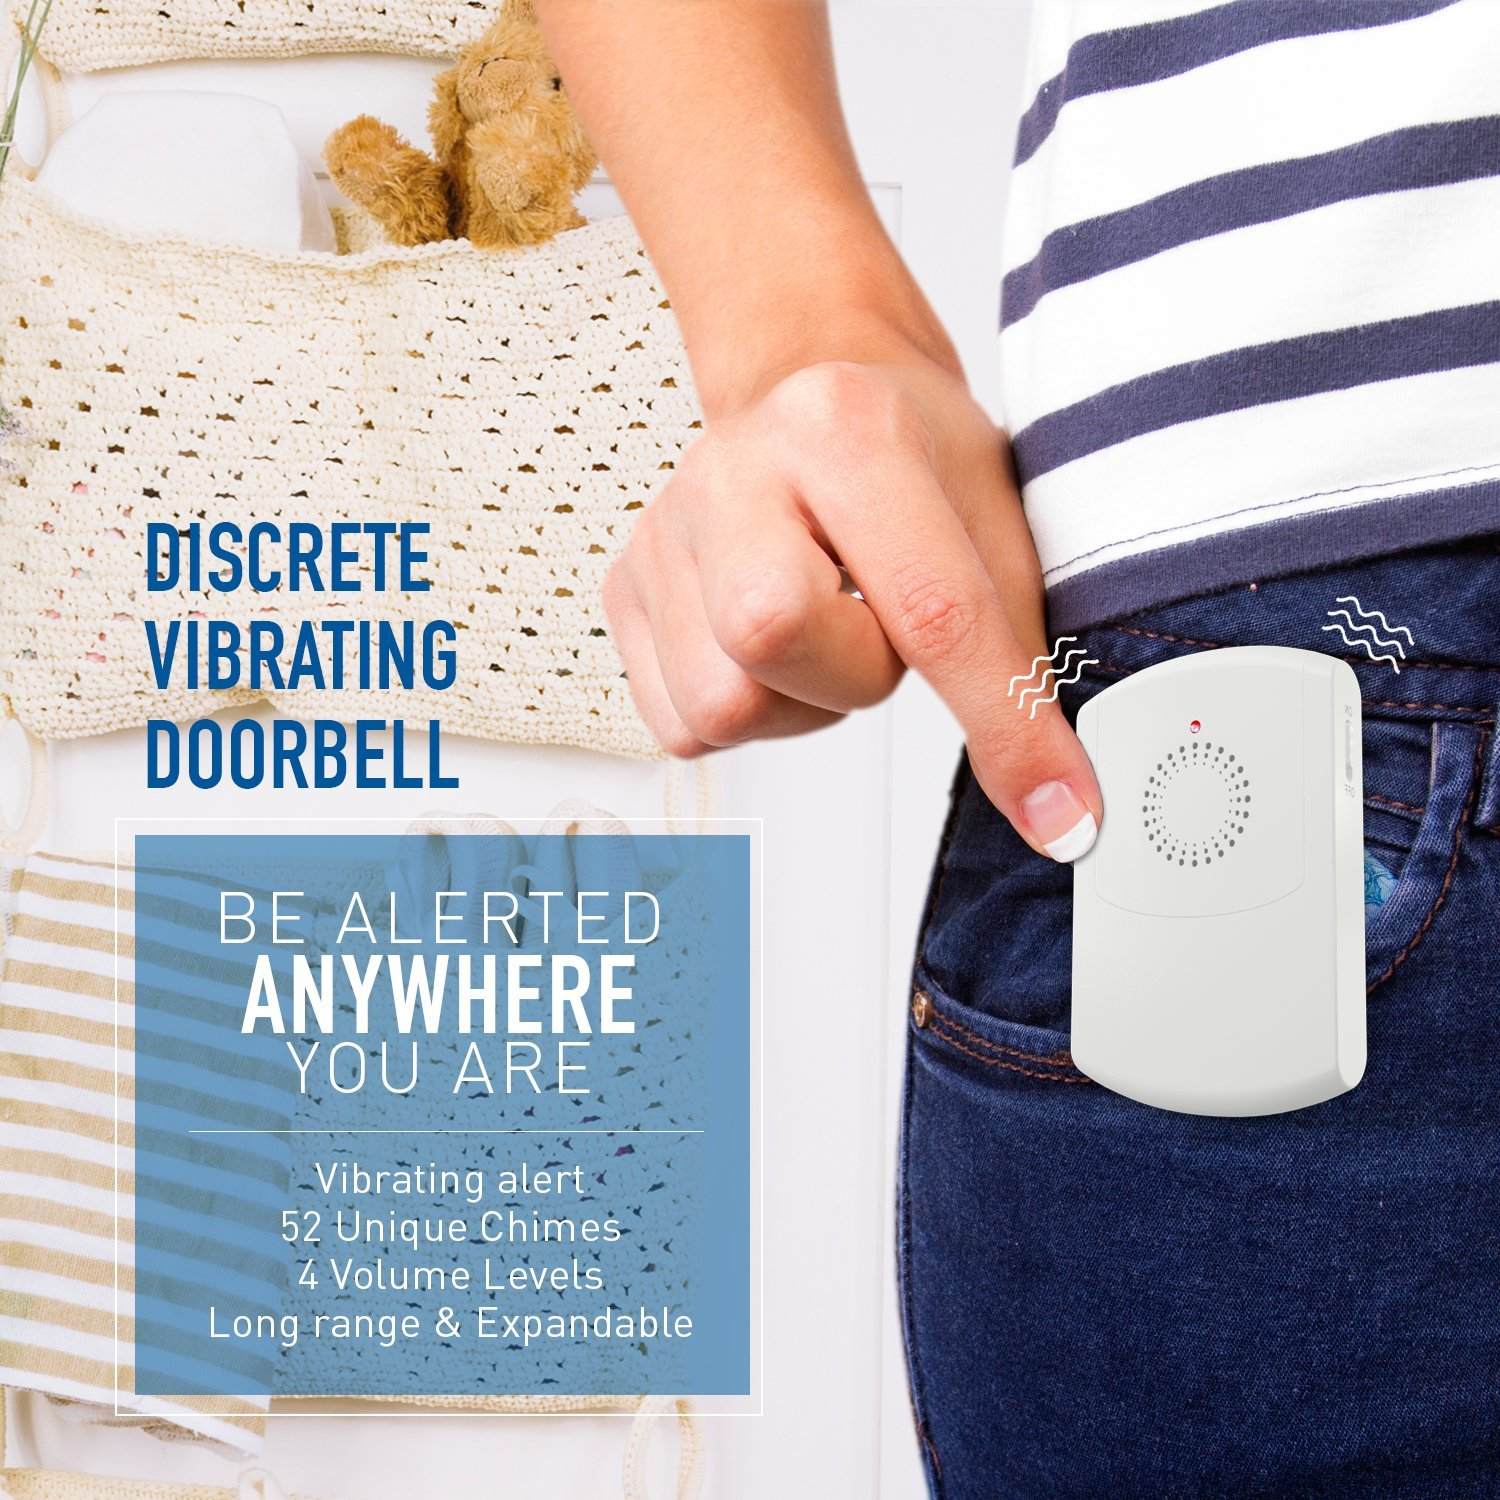 Sadotech Portable Vibrating Flashing Doorbell Receiver Vibrates Electrical Wiring In The Home Deaf Wireless Doorbells With Belt Clip Transmitter Button And Plugin Flashes For Hearing Impaired